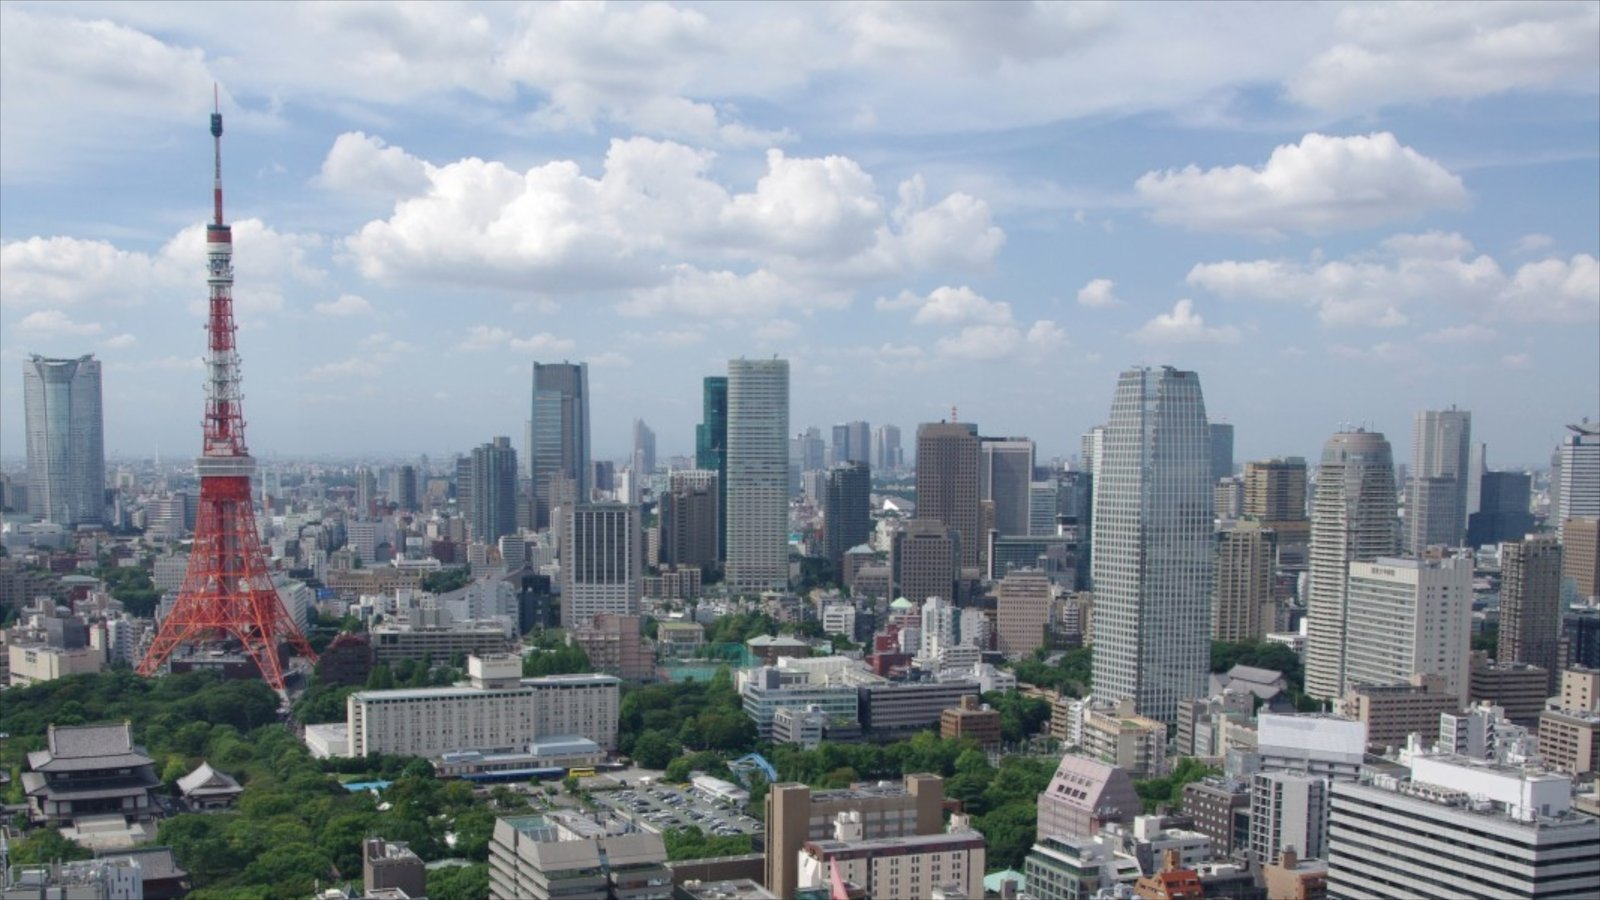 Tokyo Tower which includes a city and city views